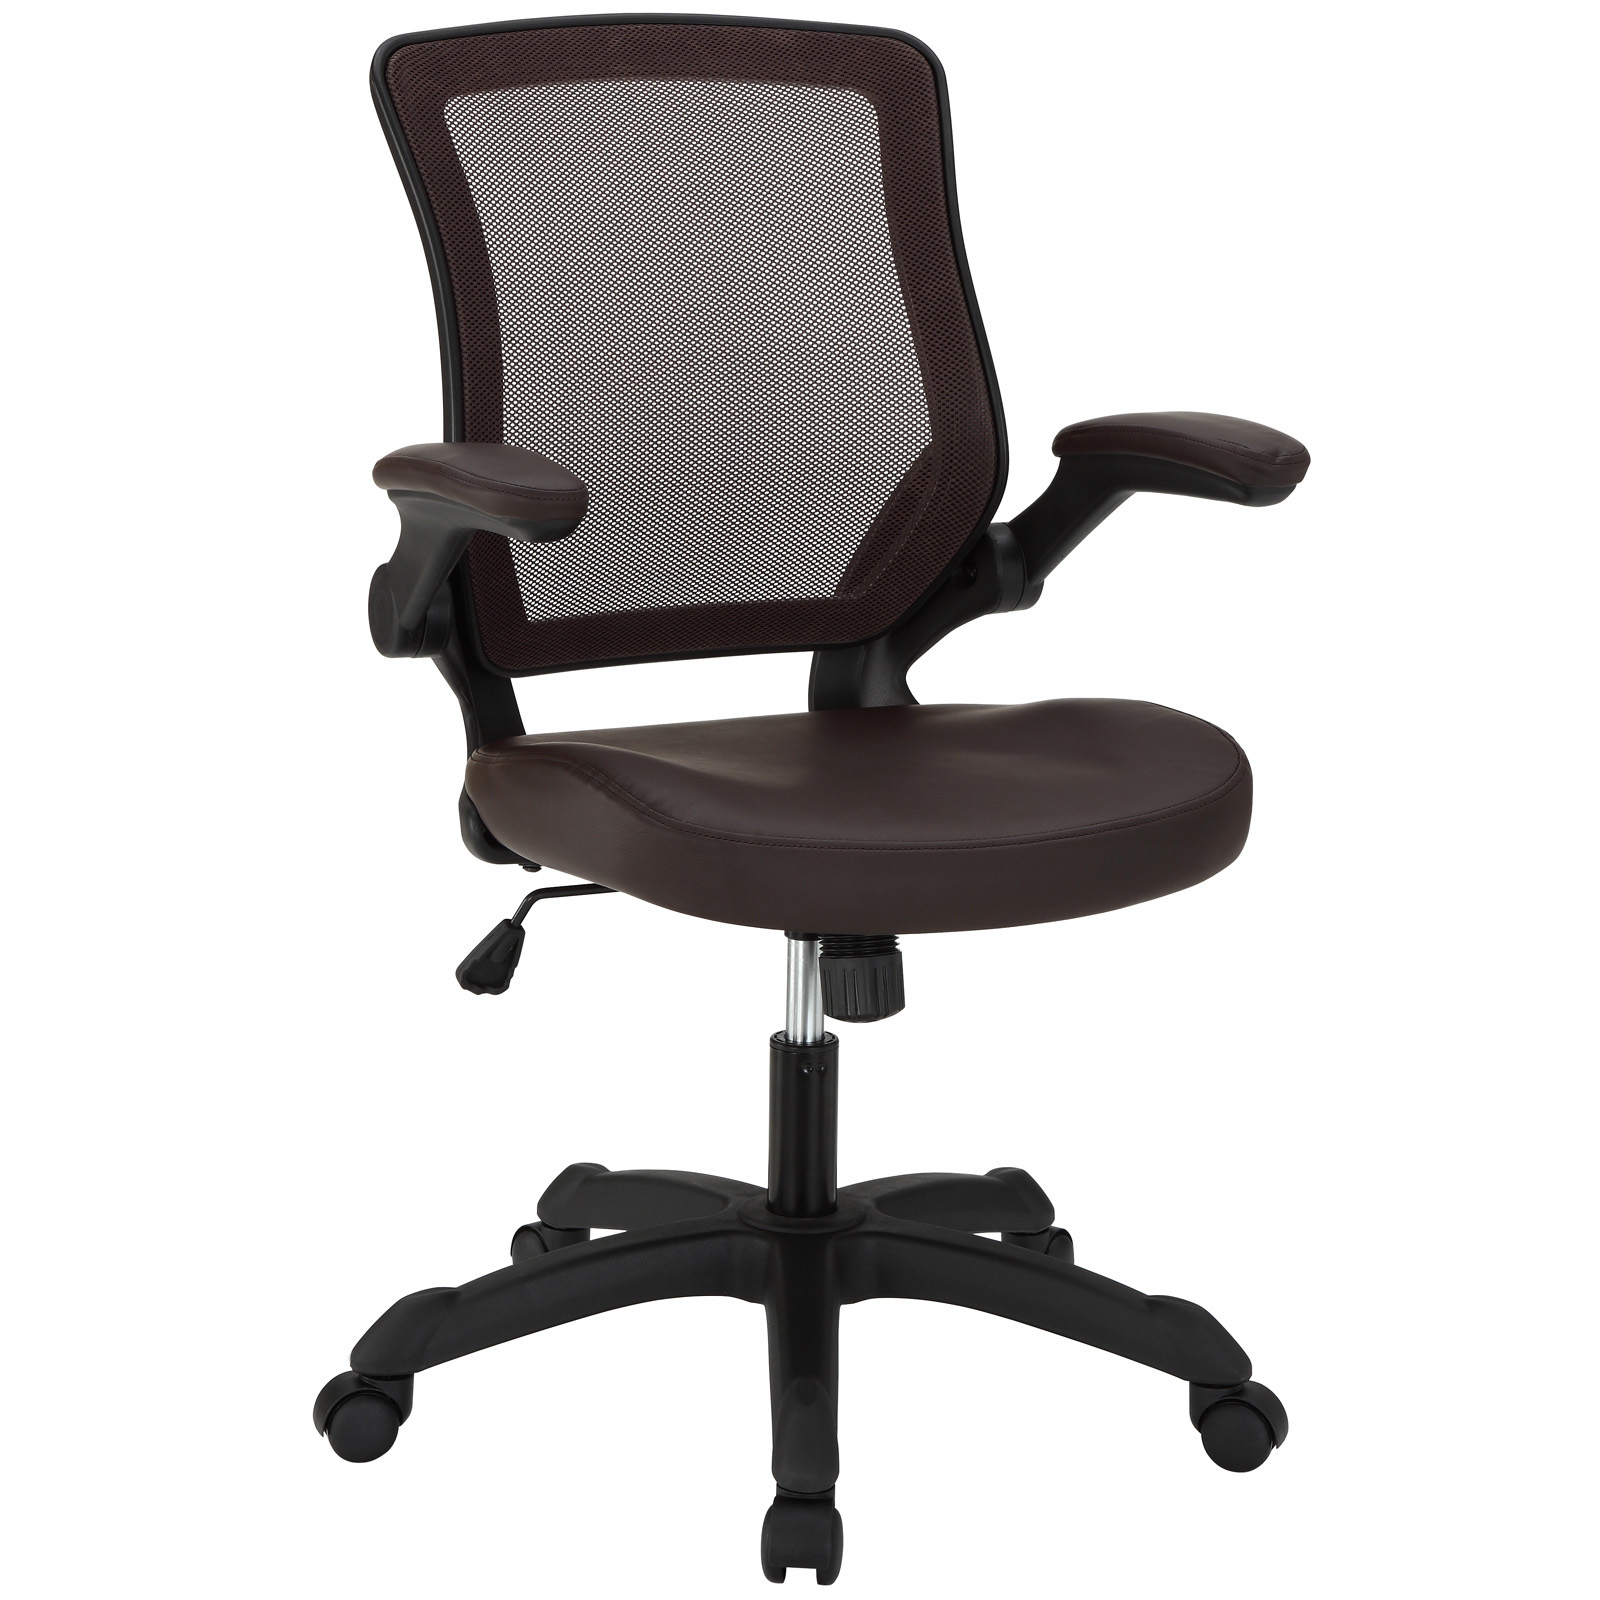 Beau Modway Veer Office Chair With Flip Up Arms